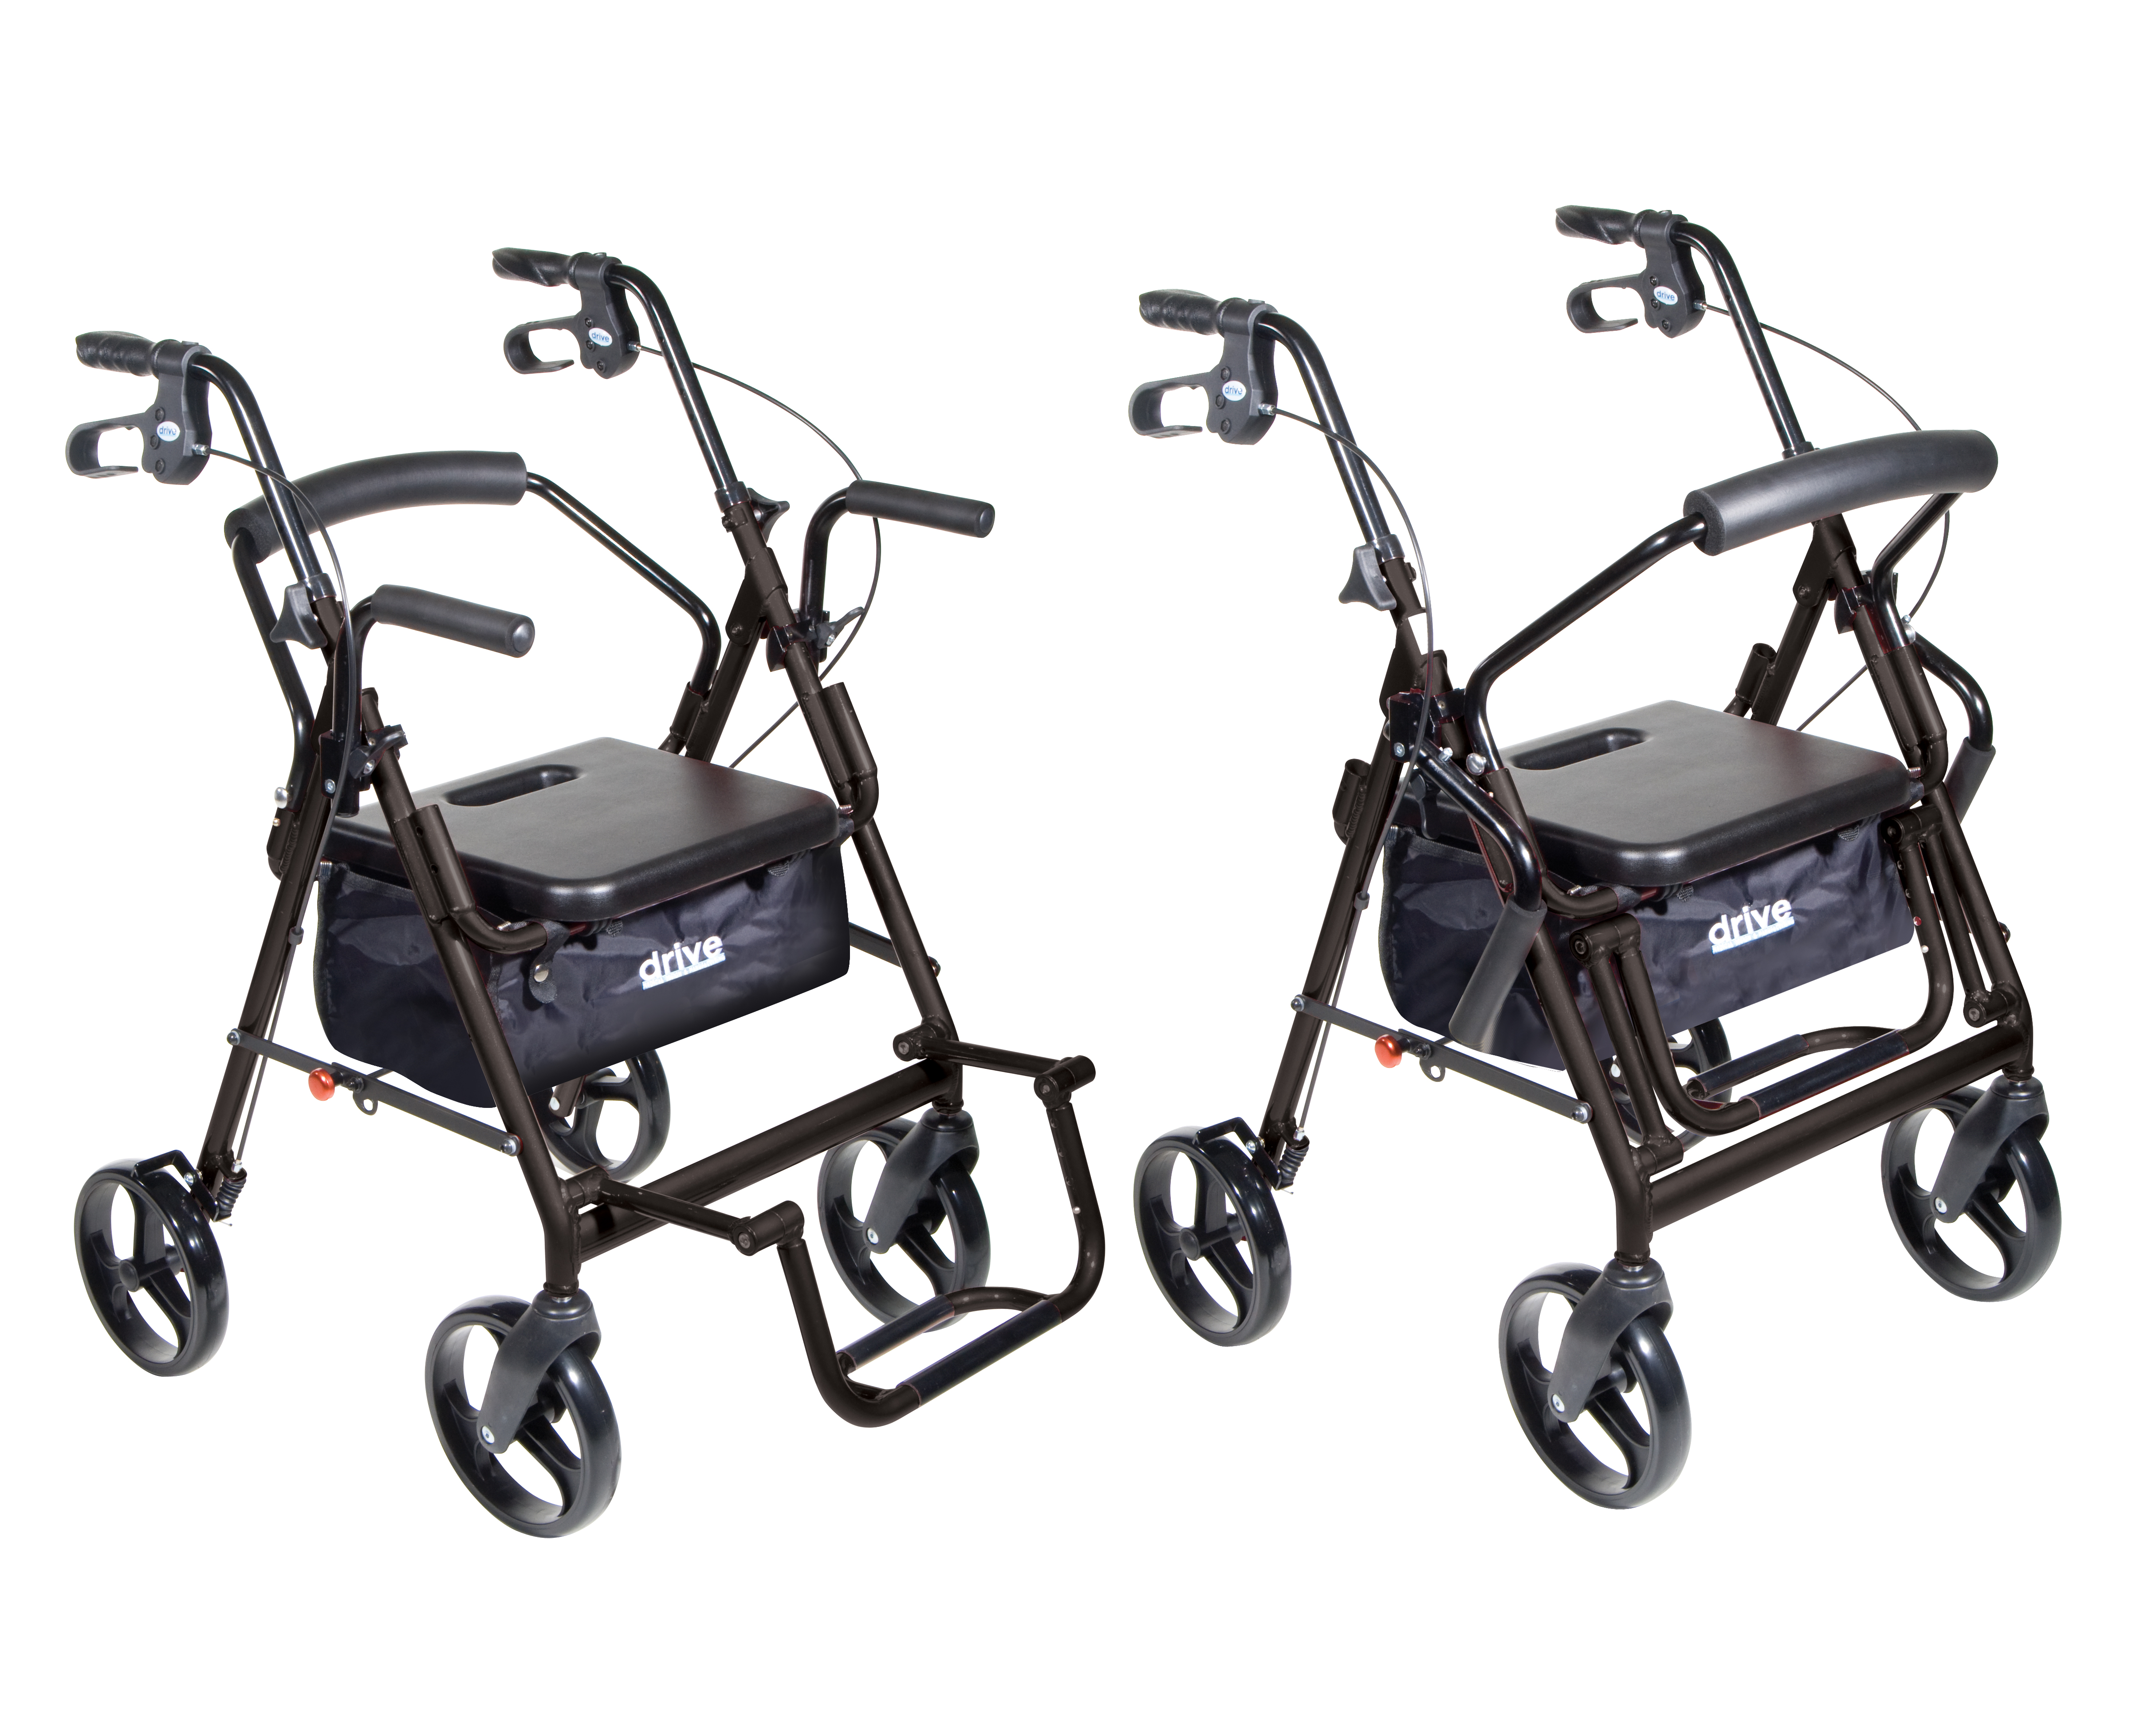 Rollators besides Dfl19 Rd Fly Lite Ultra Lightweight Transport Wheelchair 822383137391 besides Product together with Hybrid Walker Transport Chair furthermore 795b. on duet transport chair rollator